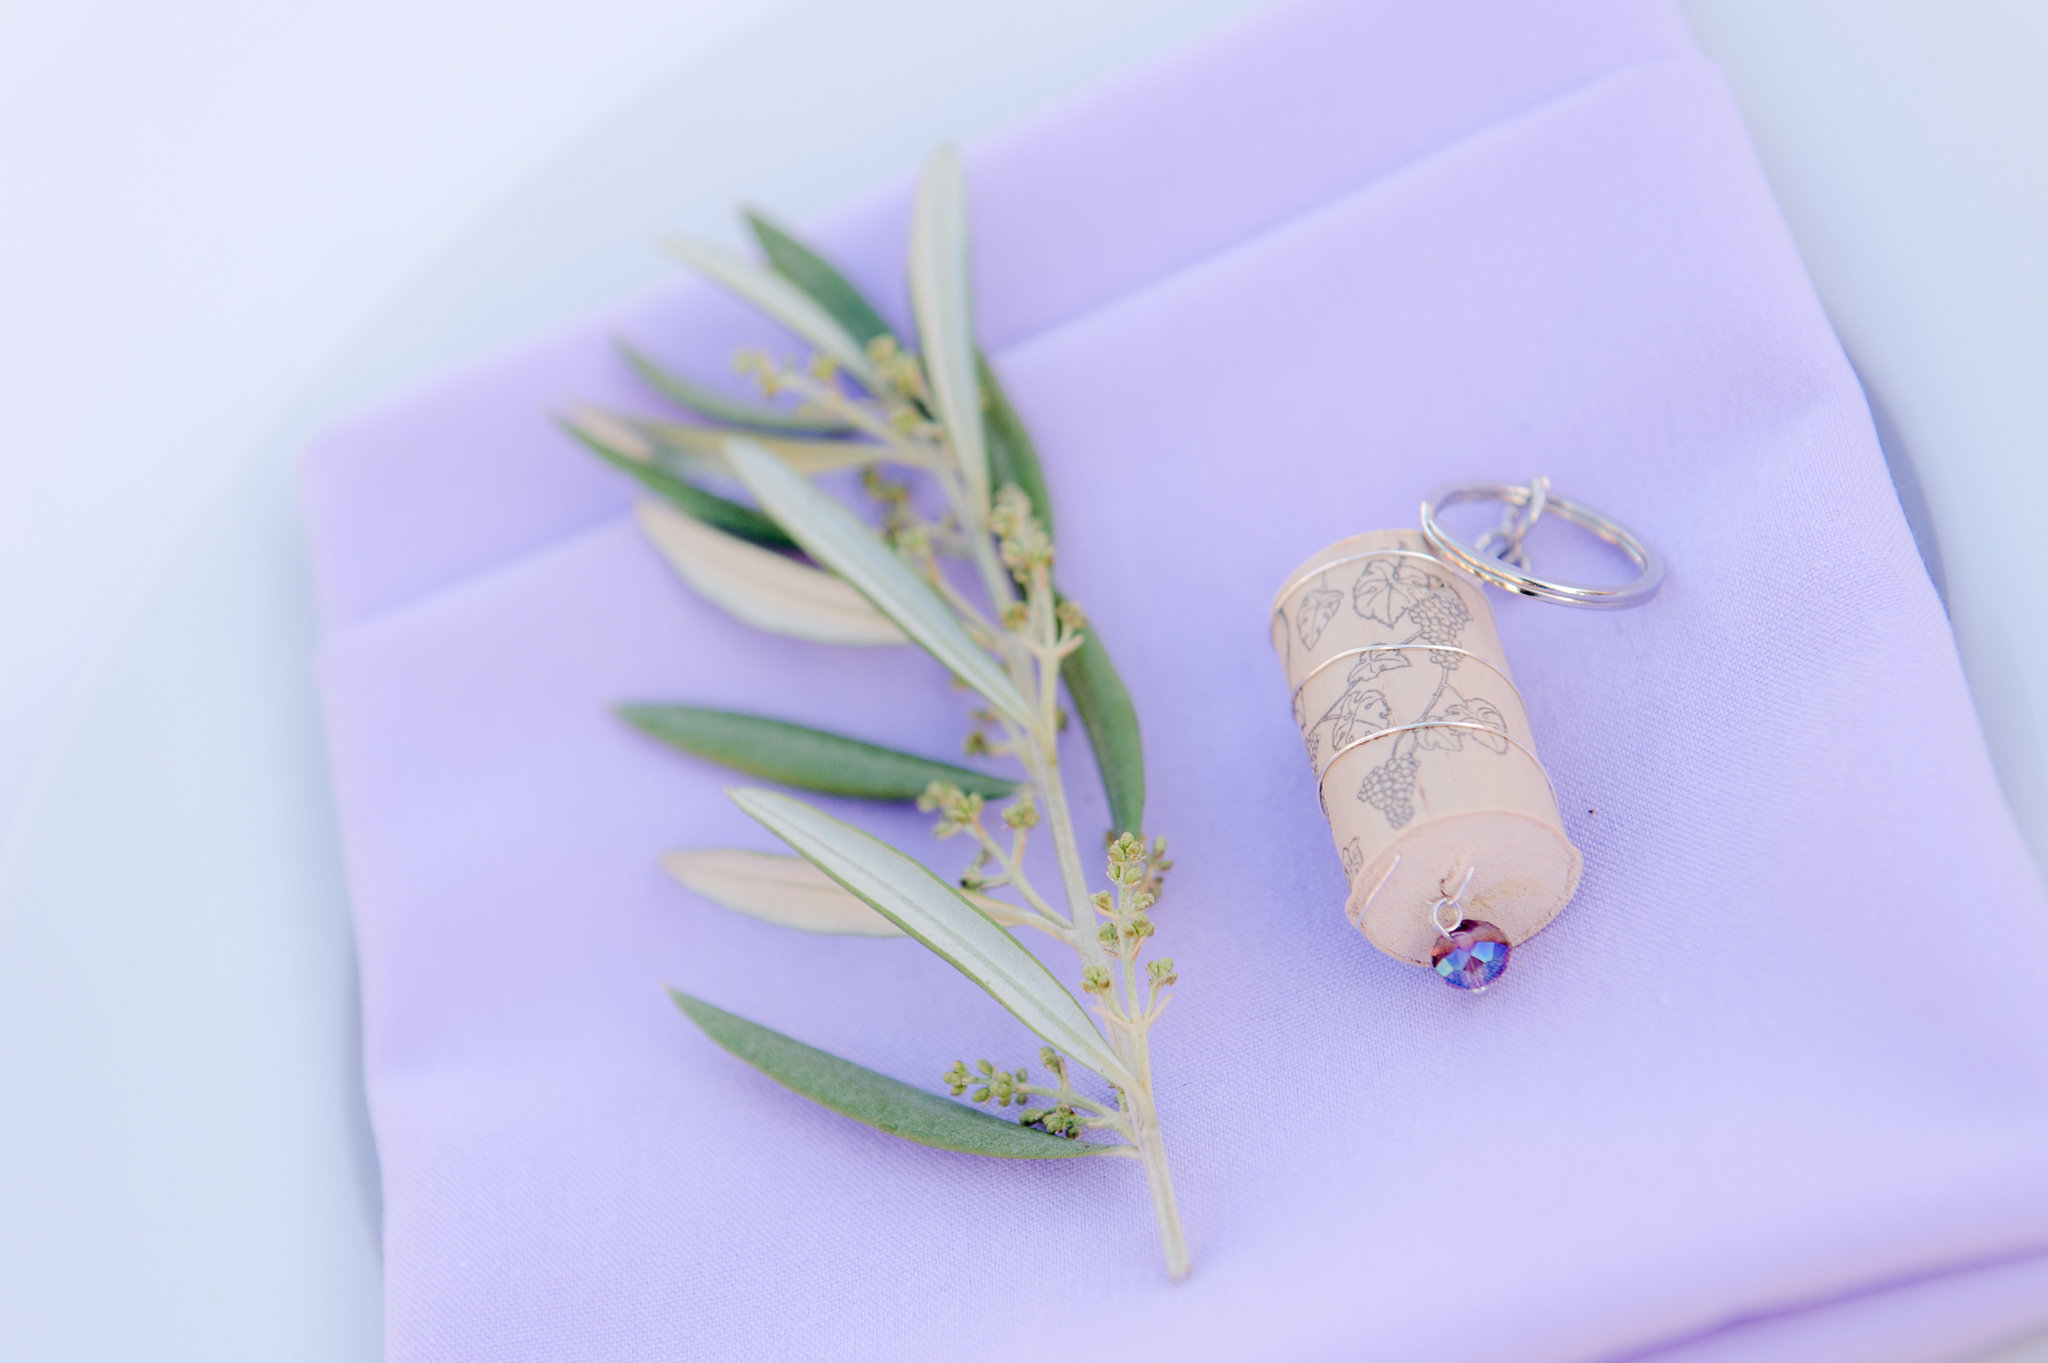 olive leaf napkin cork favor